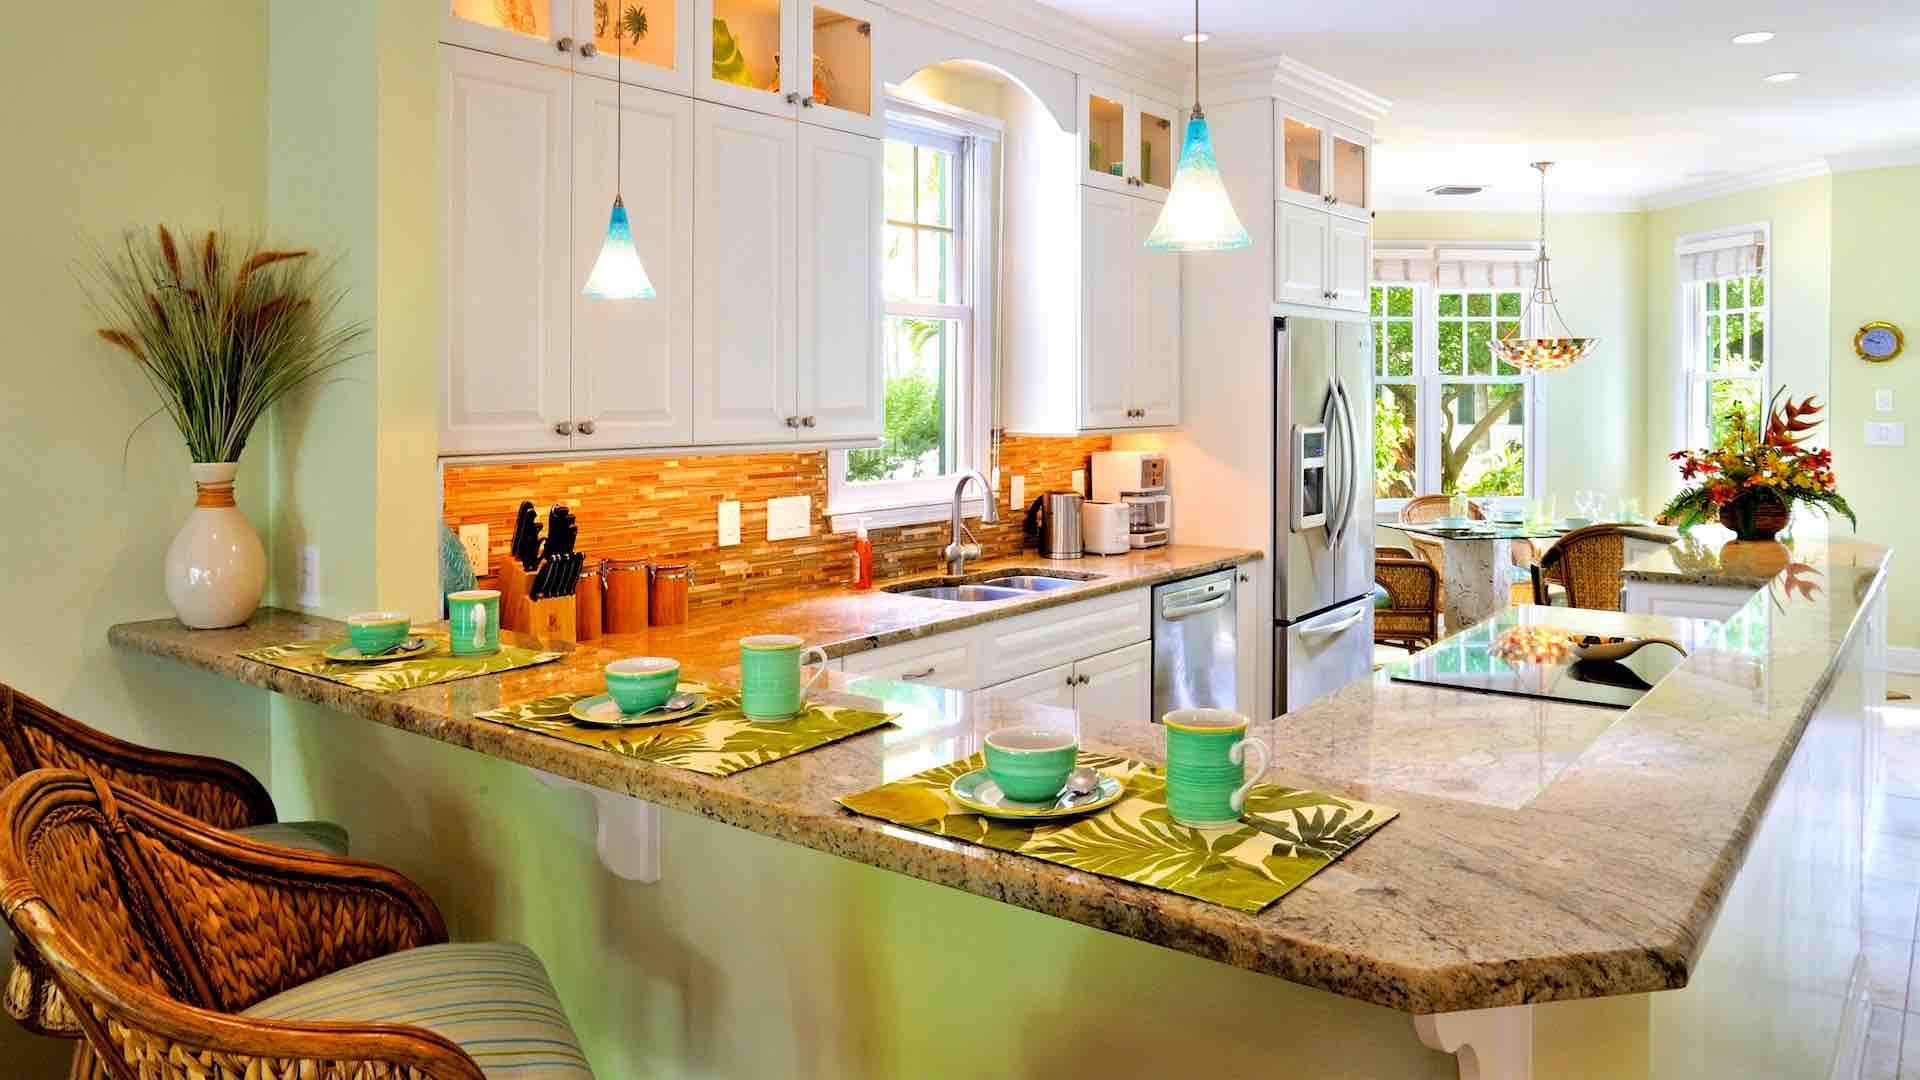 The kitchen is equipped with top of the line appliances and everything else, too...